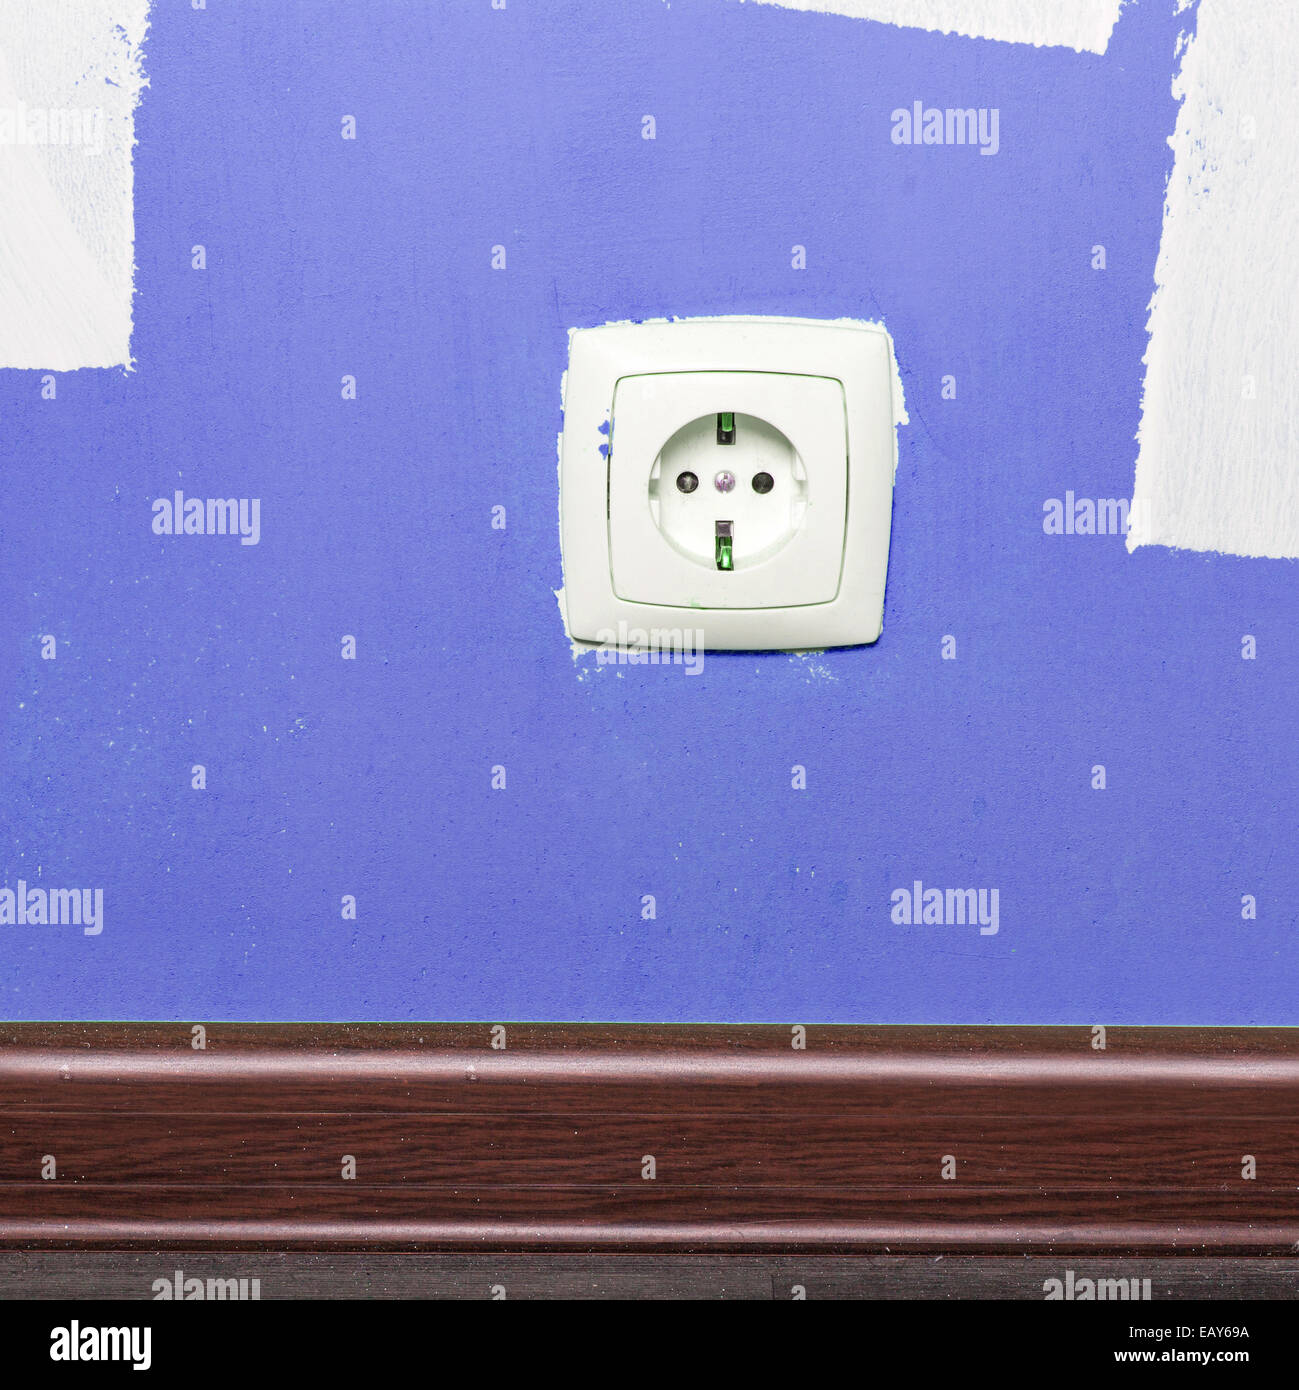 Electrical outlet on wall in room, interior Stock Photo